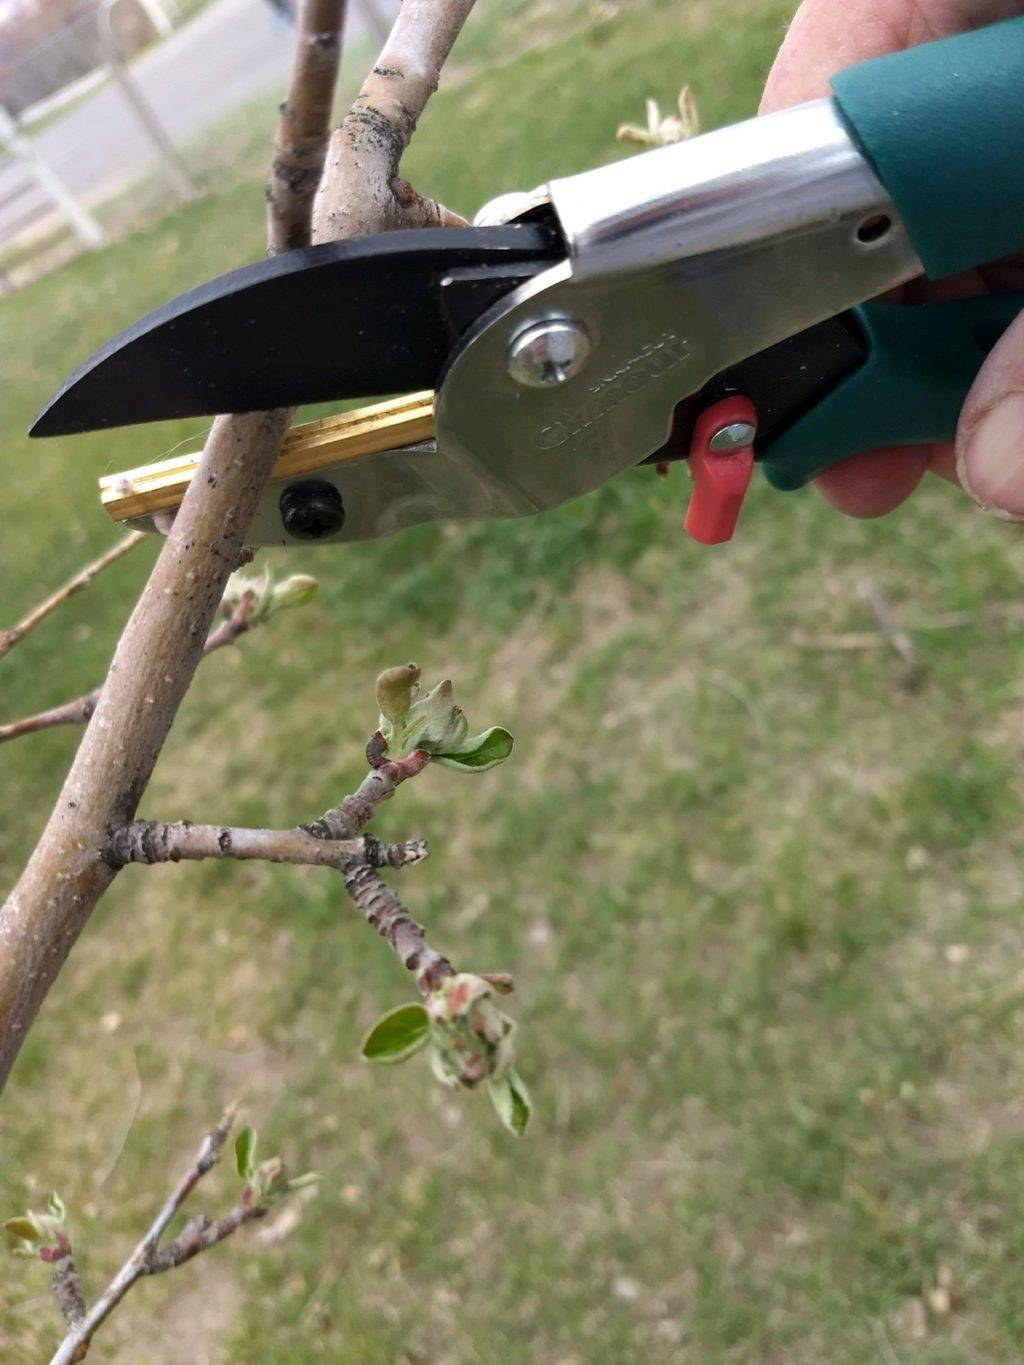 cutting a branch with garden shears